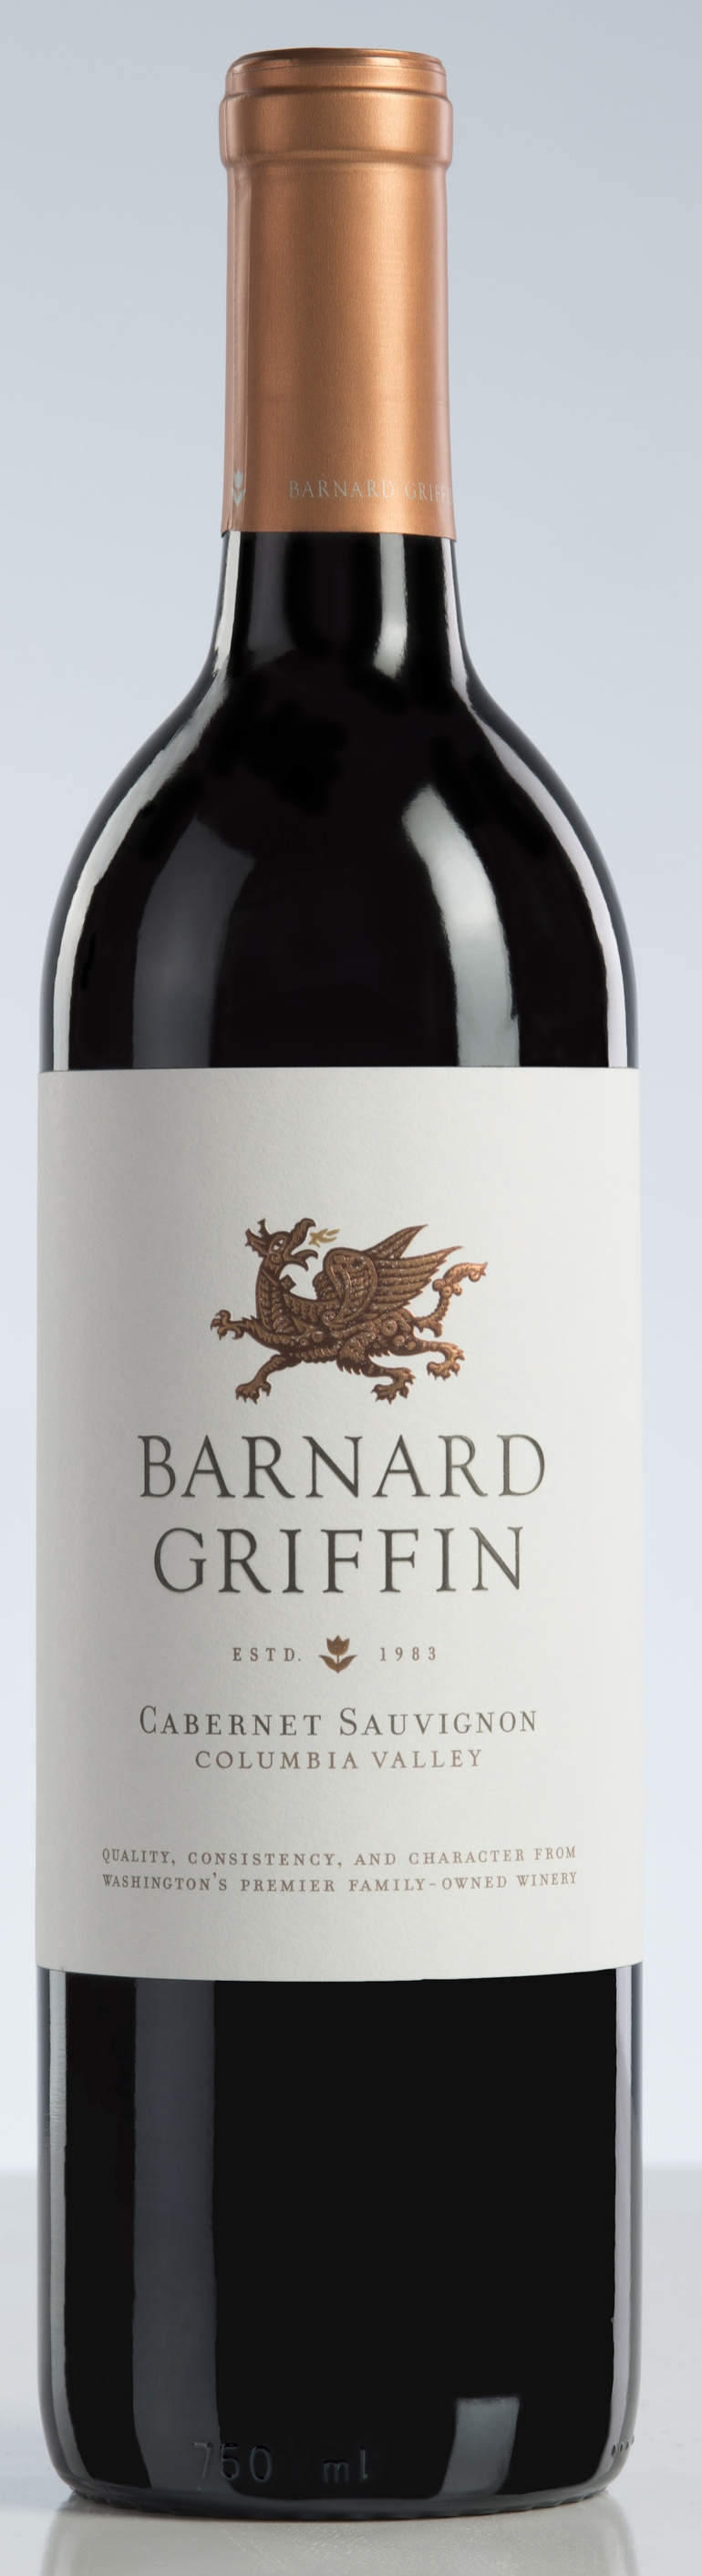 Barnard Griffin bottle.jpg